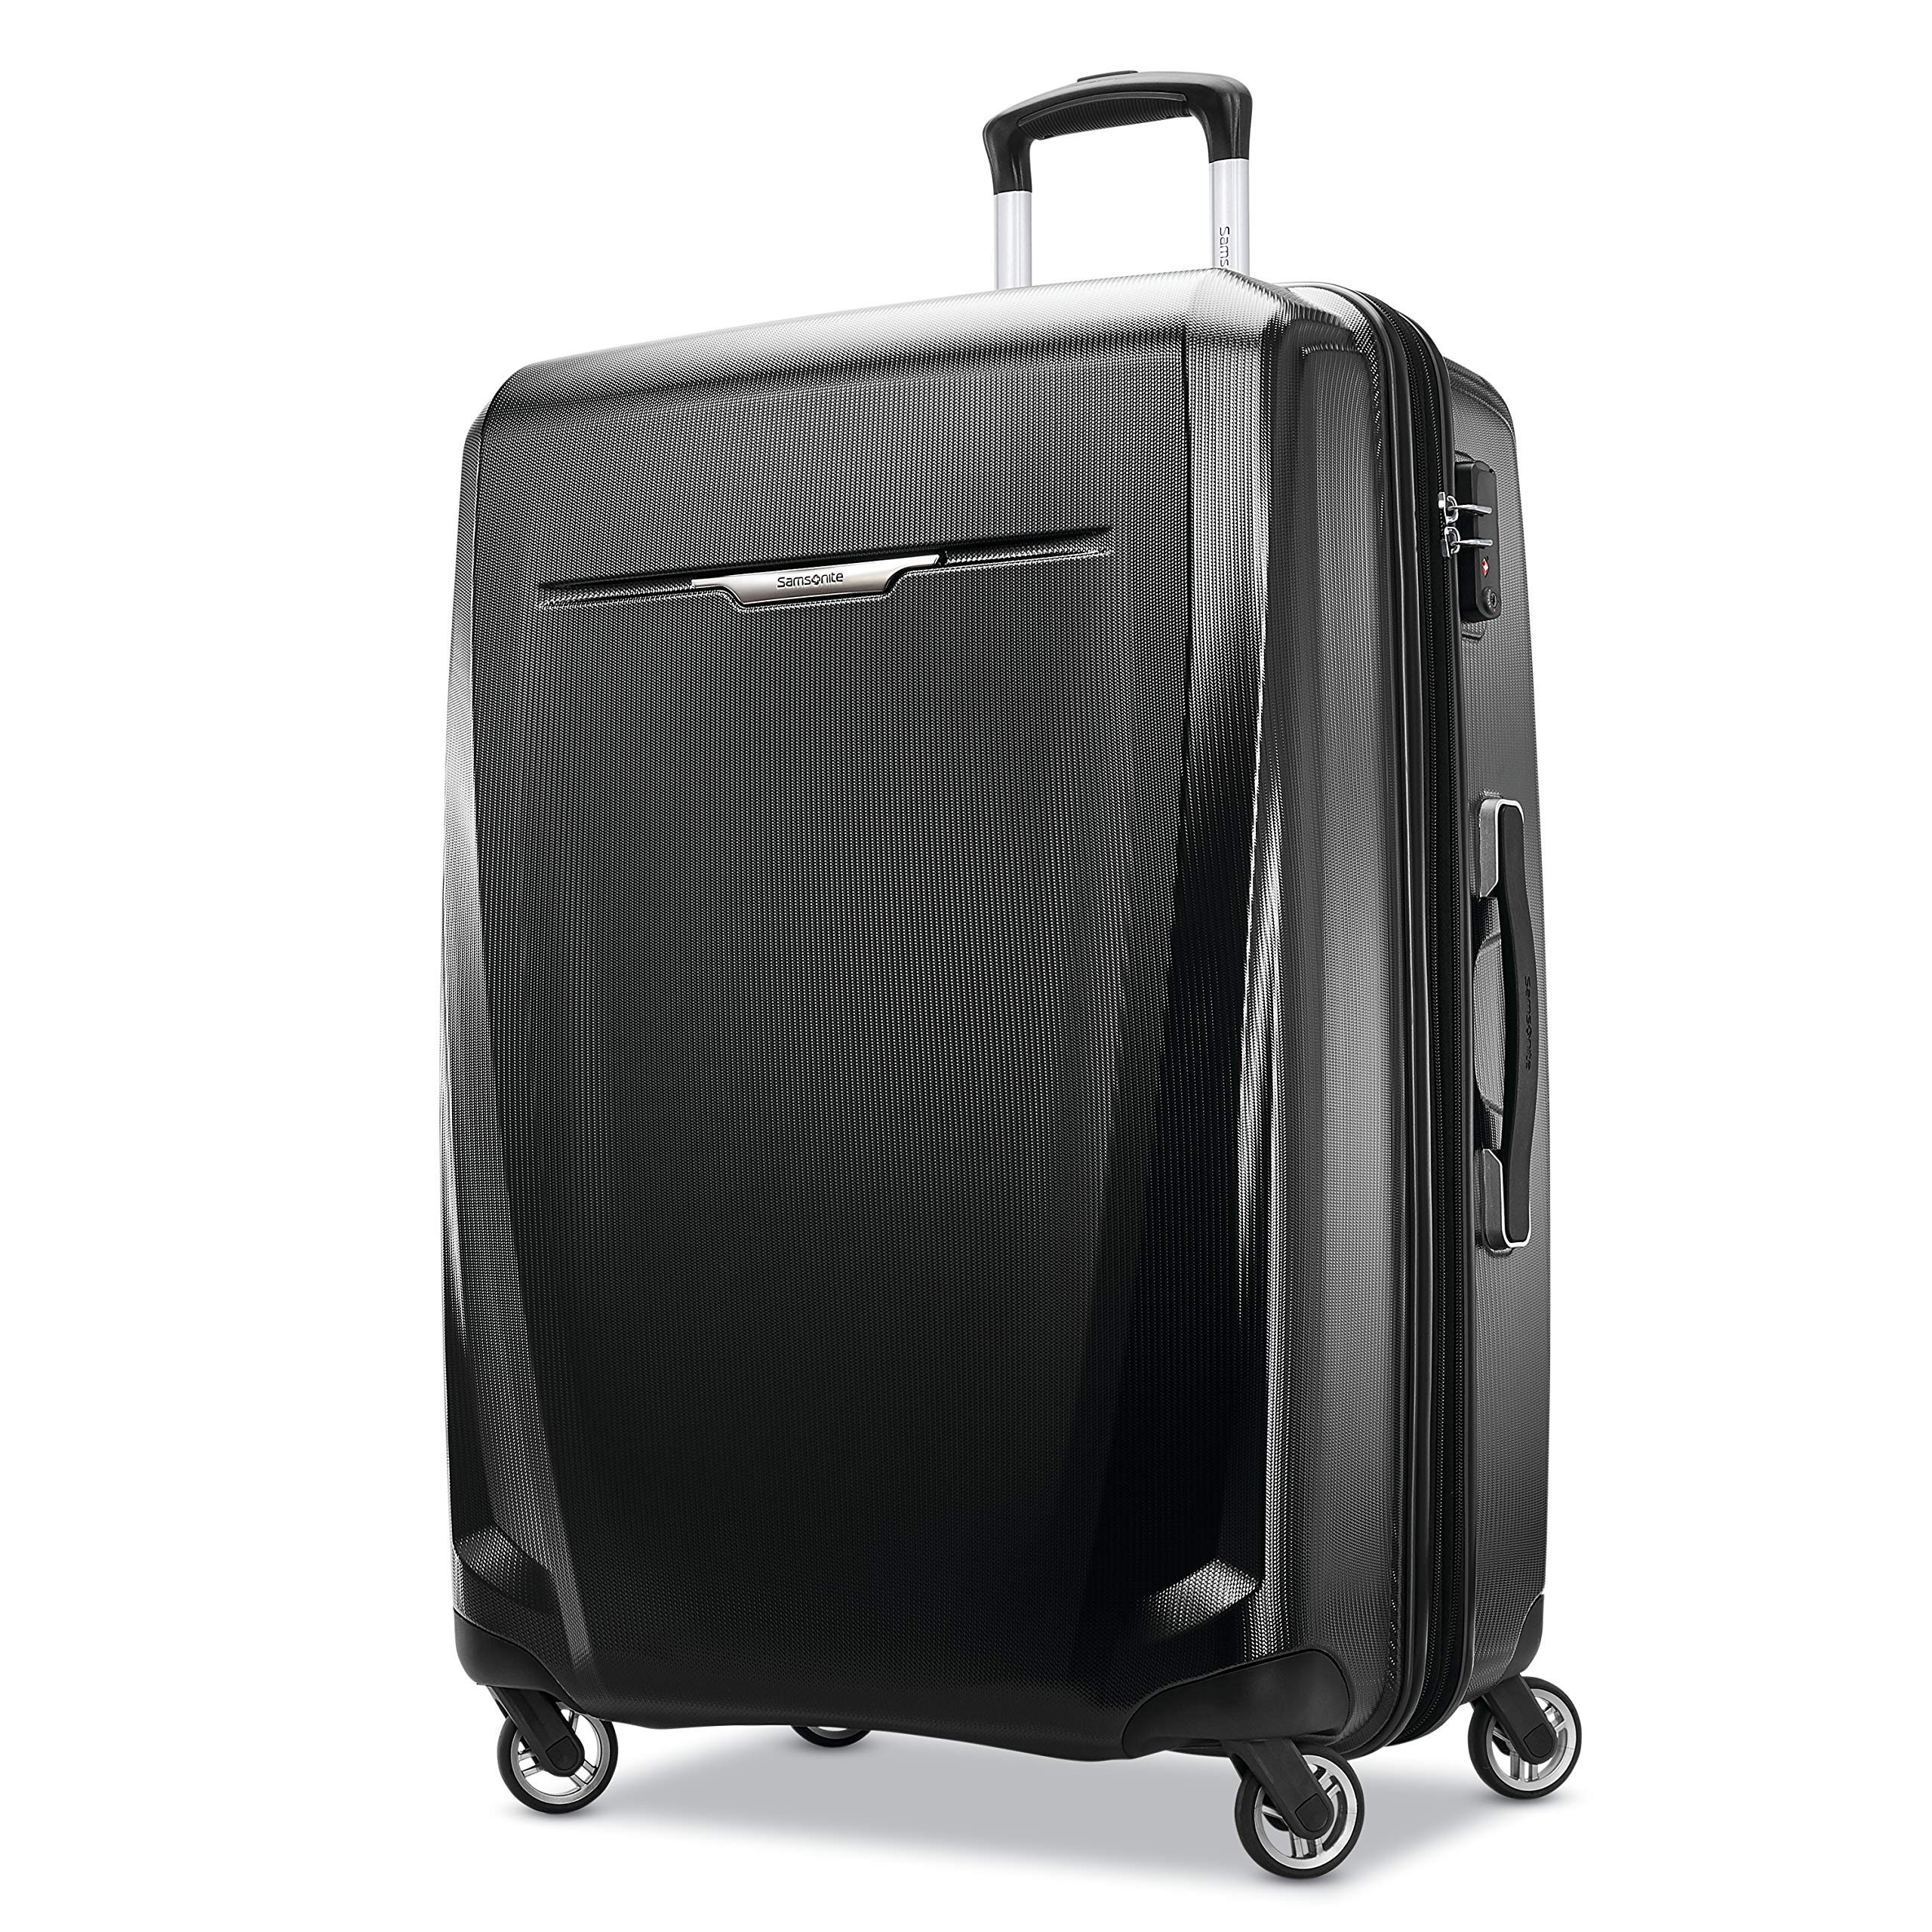 Samsonite Winfield 3 DLX Hardside Checked Luggage with Spinner Wheels, 28-Inch, Black